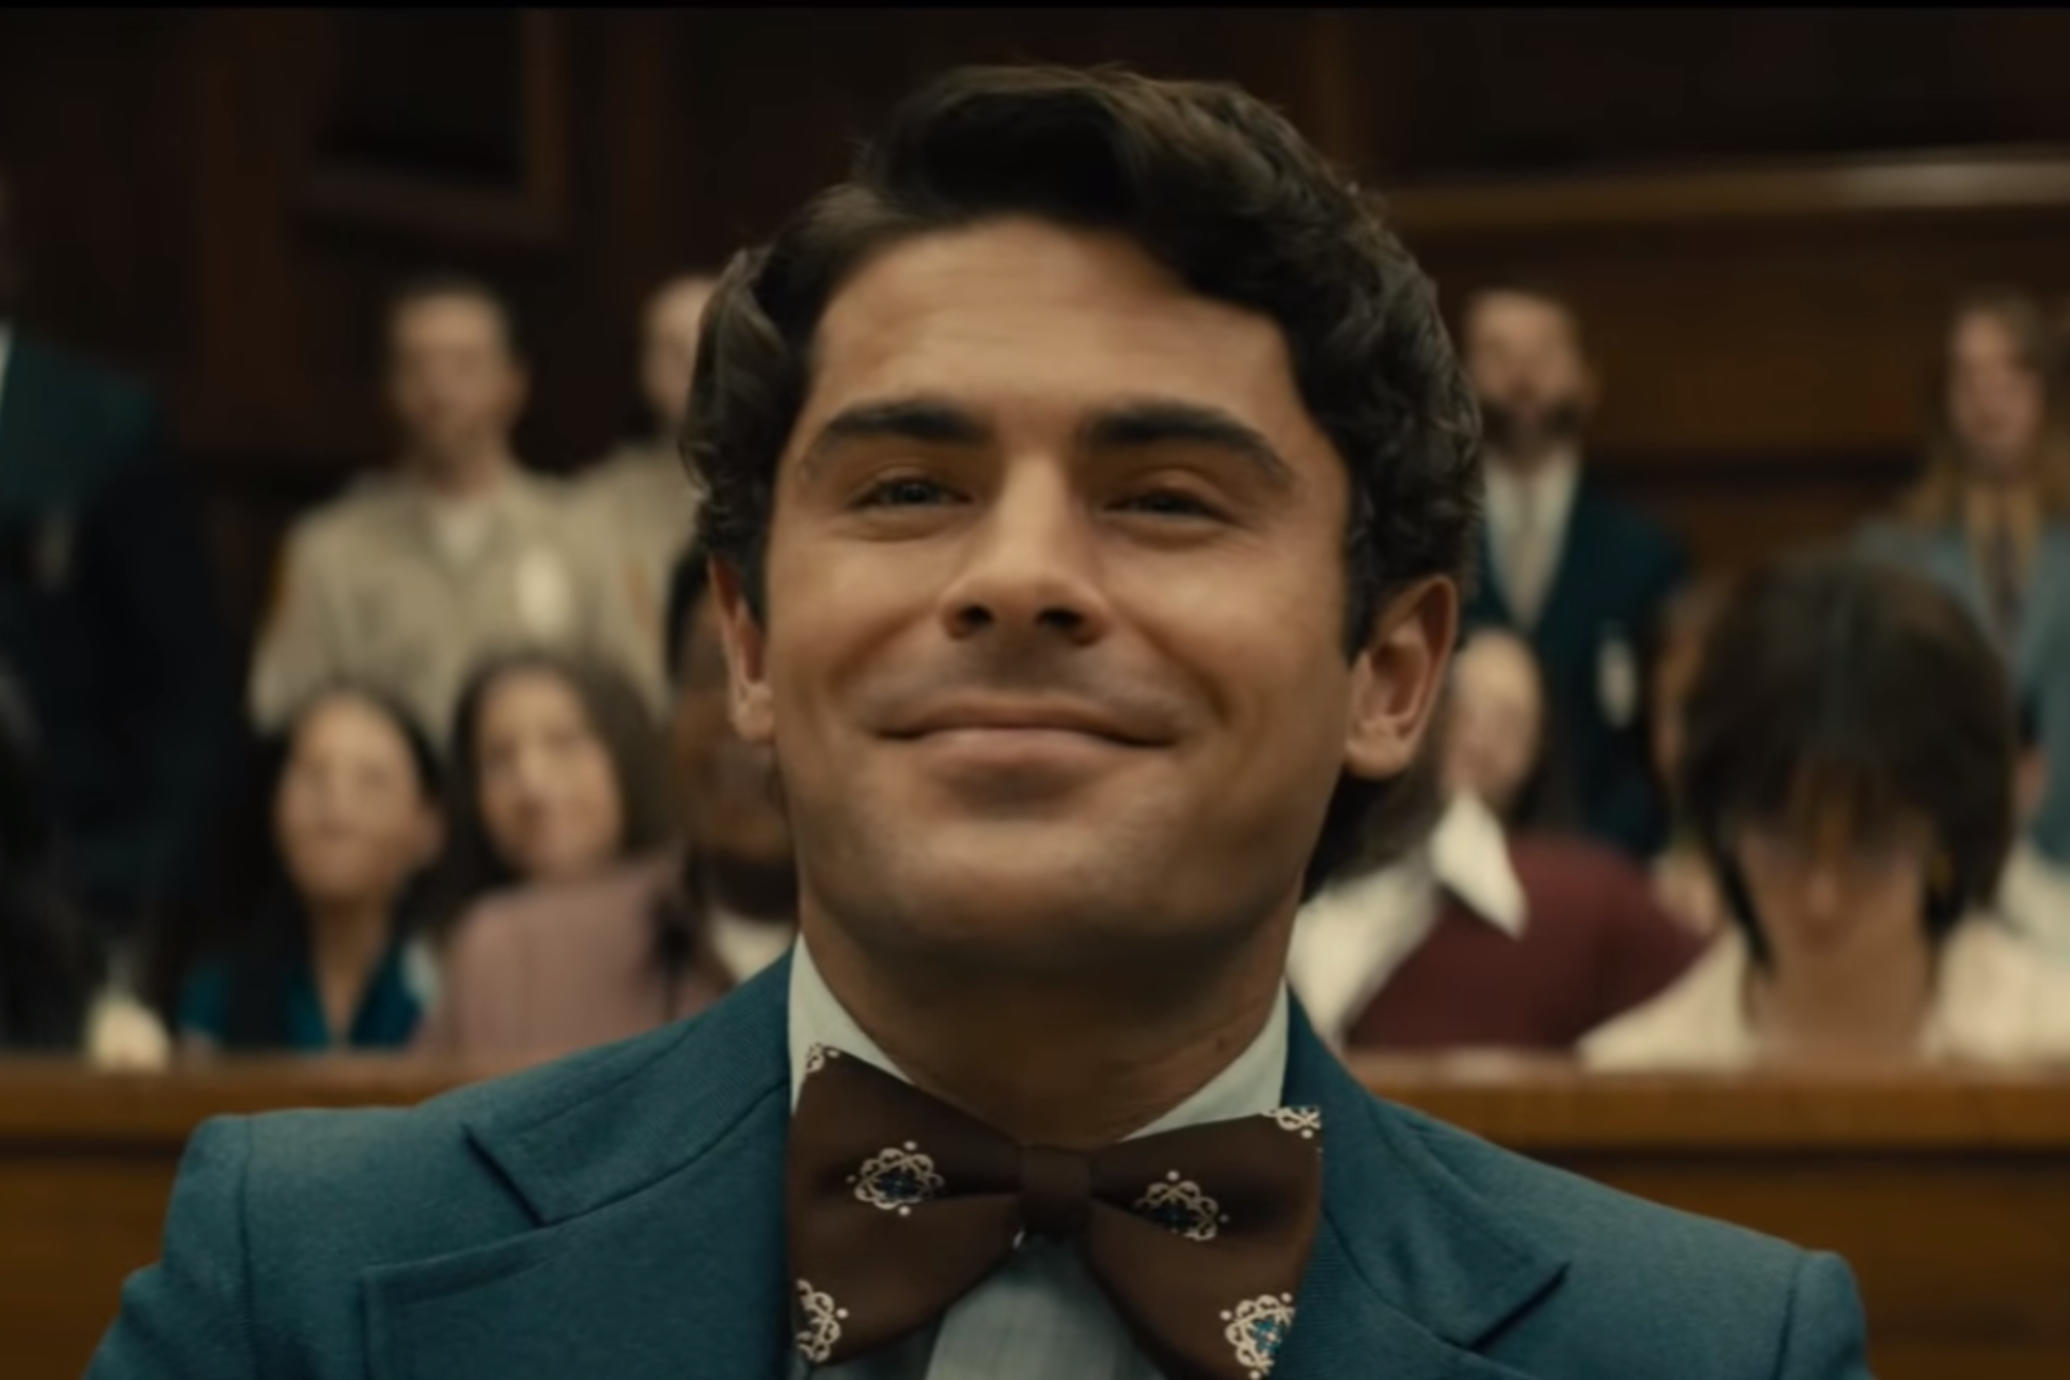 Ted Bundy (Zac Efron), acting as his own lawyer during the Florida trial in Extremely Wicked, Shockingly Evil and Vile (2019)